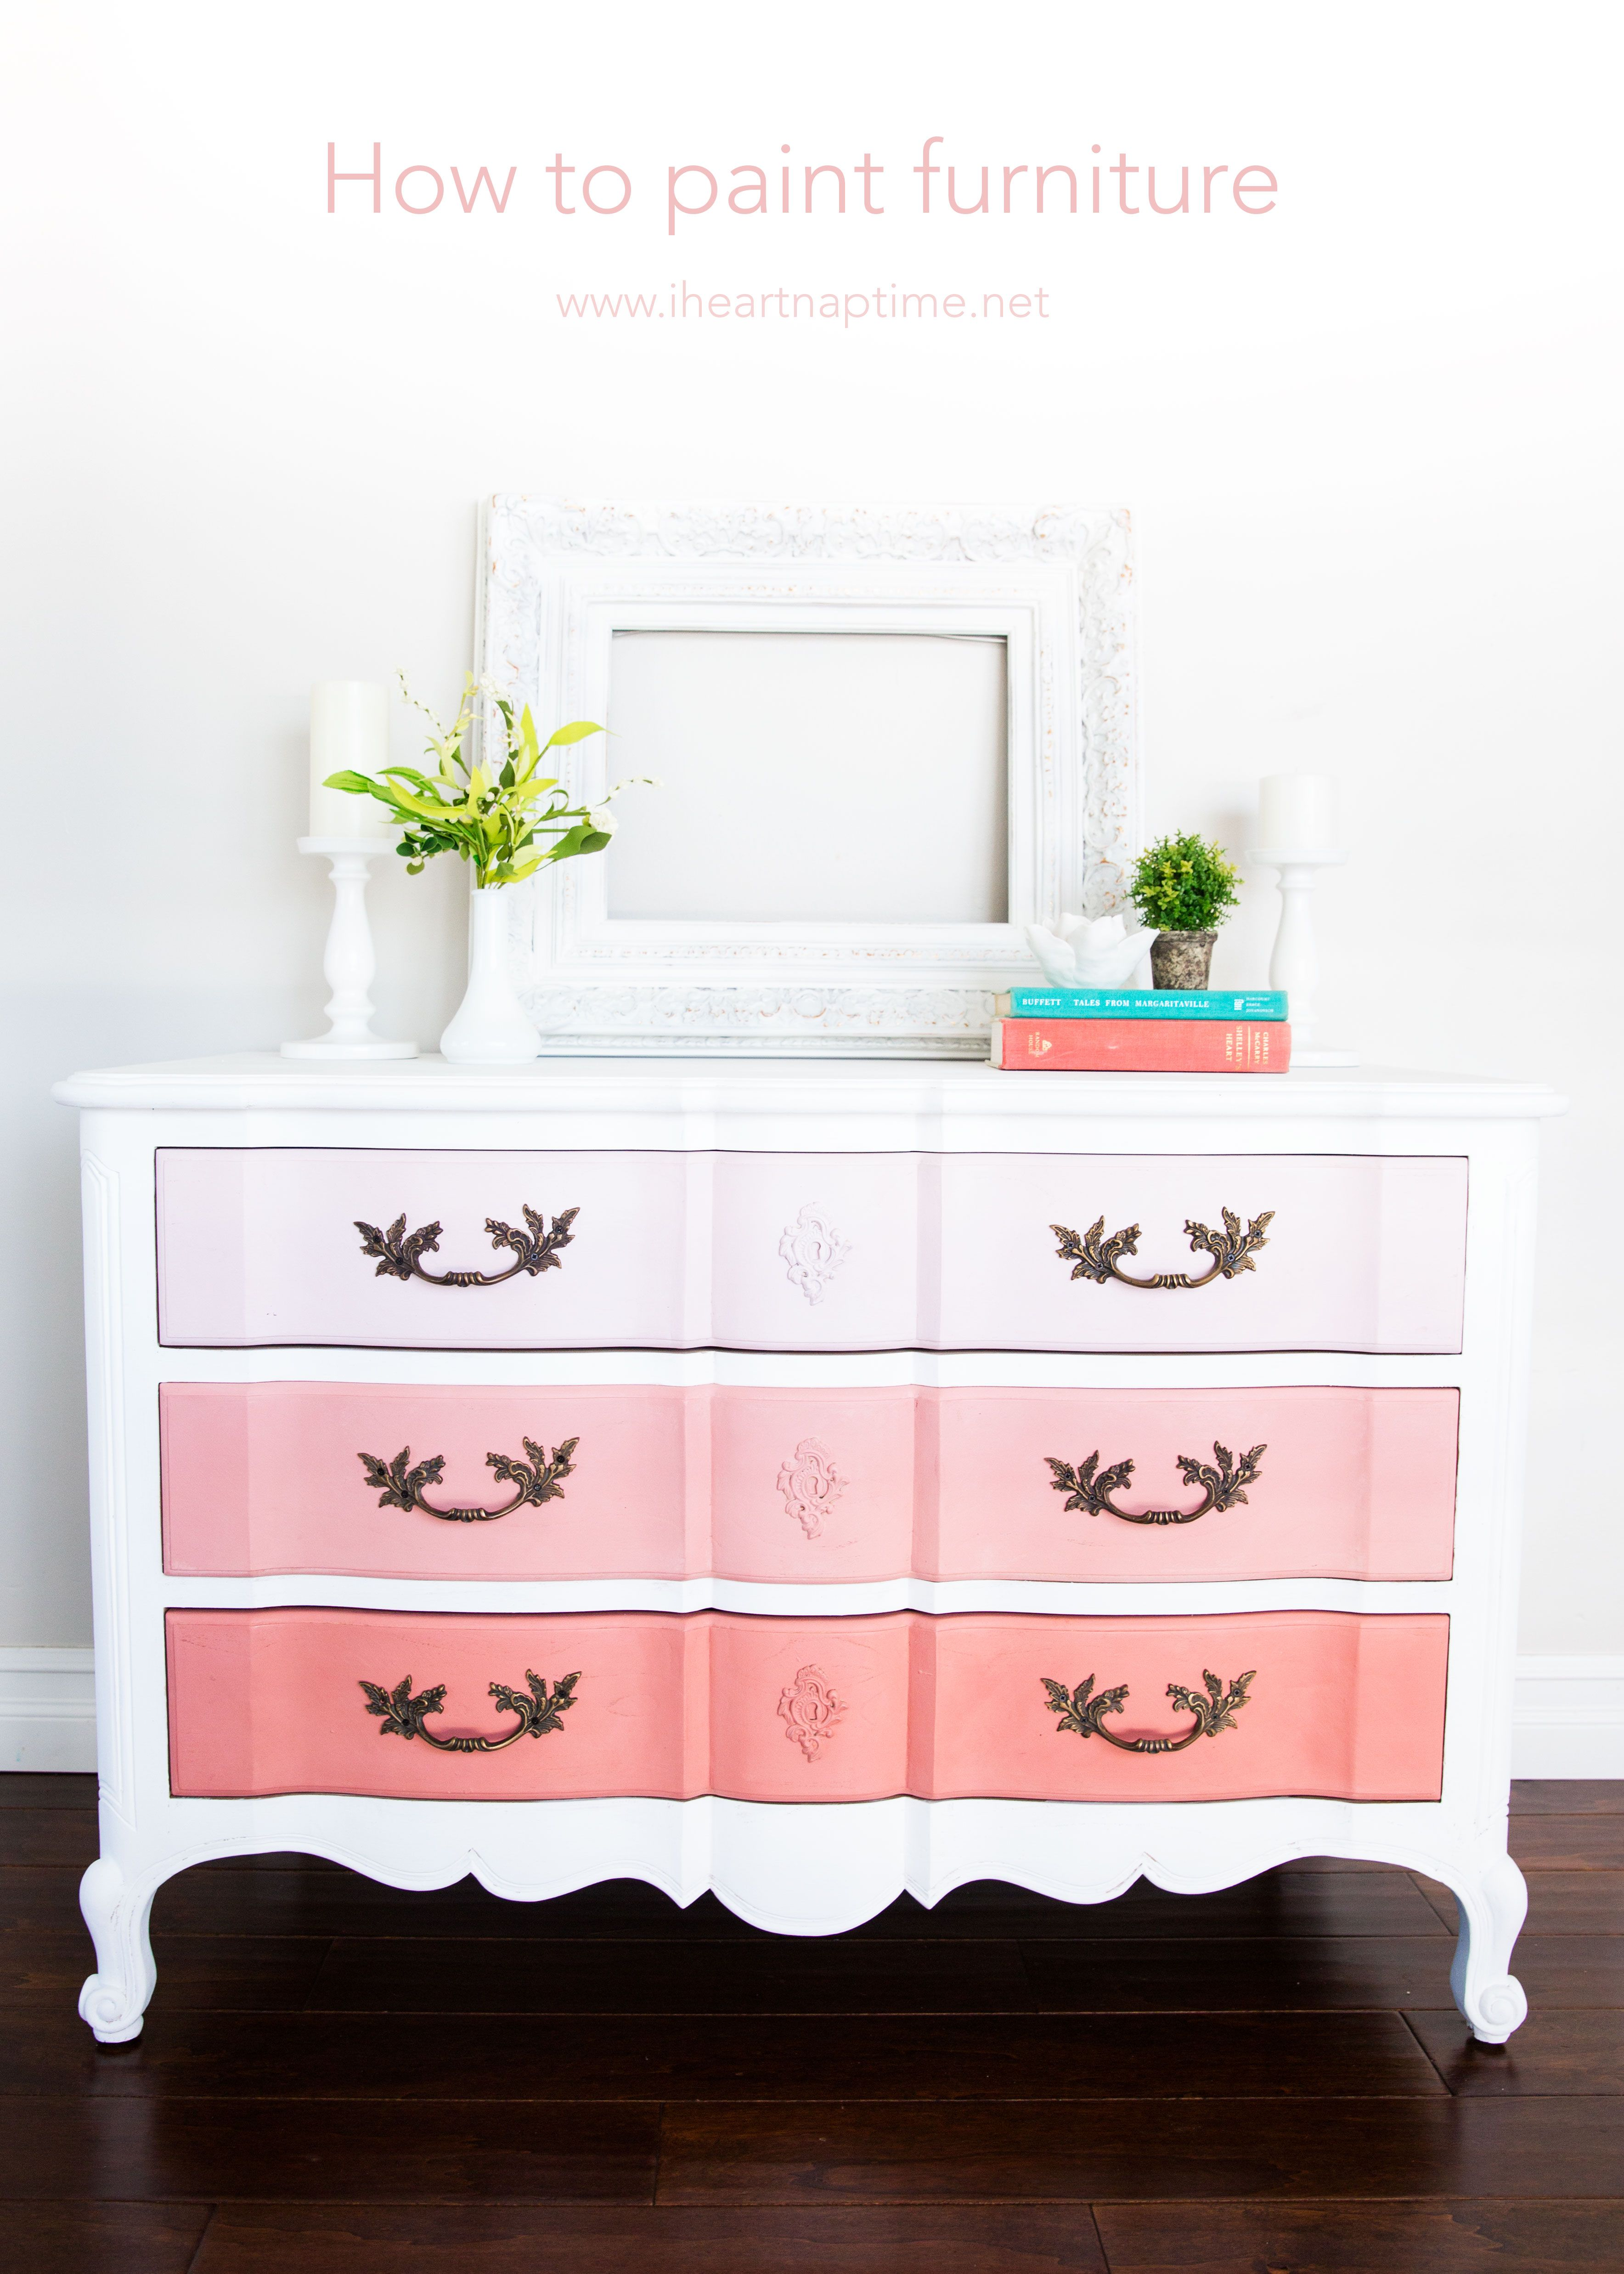 How to Paint Furniture and Ombre Dresser Painted